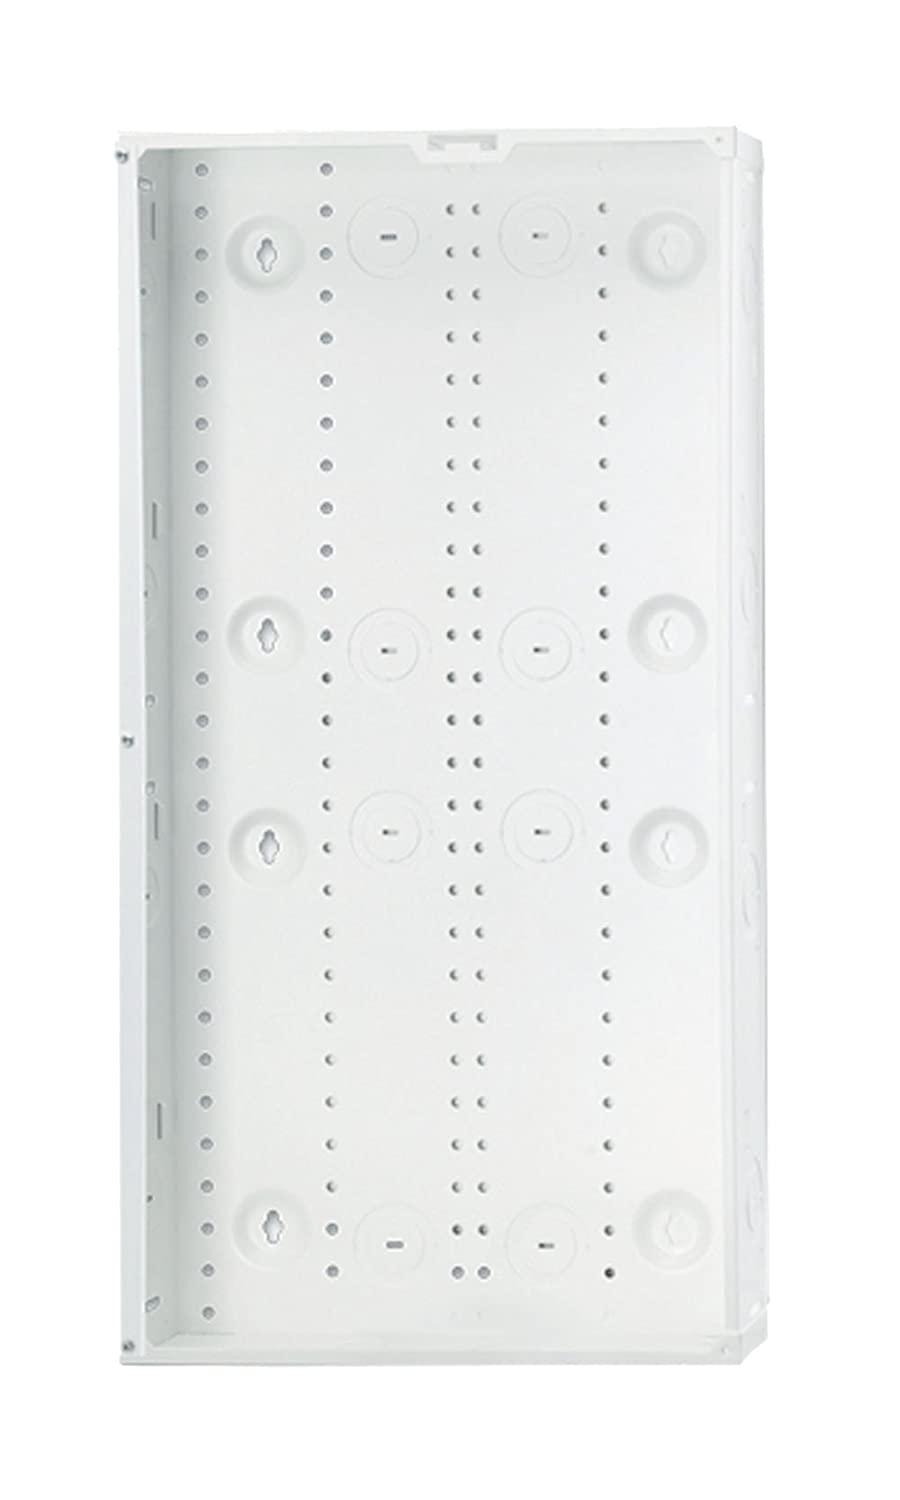 Leviton 47605 28w Series 280m Structured Media Center With Cover Diy Wiring Electrical Boxes